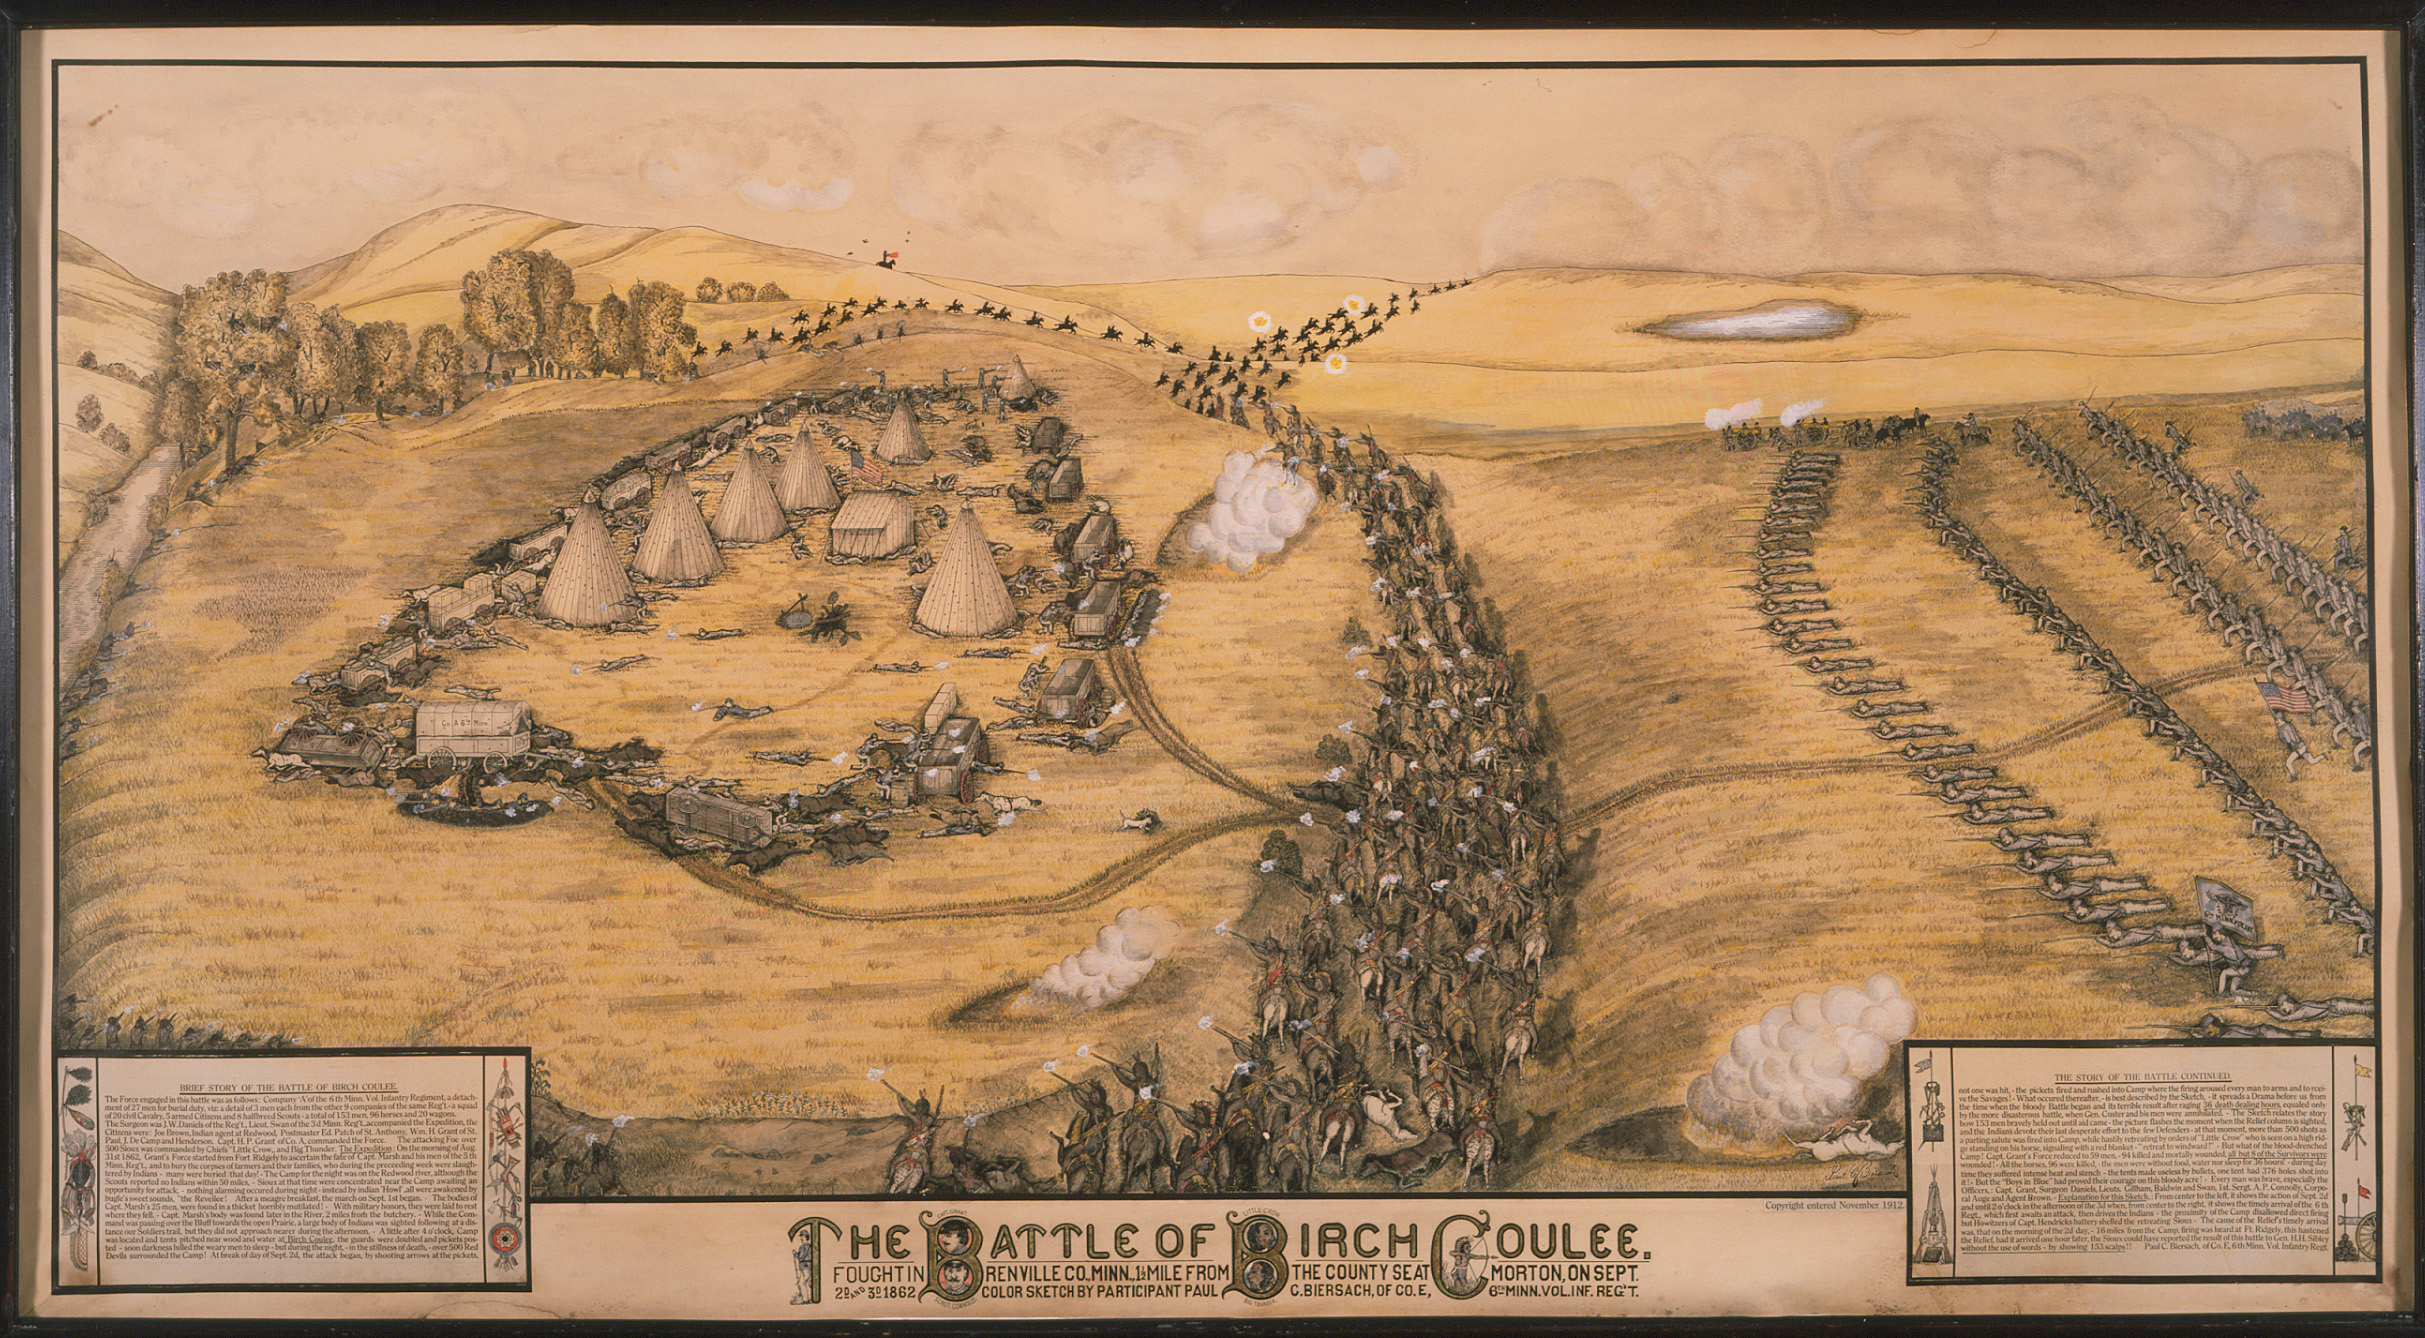 """The Battle of Birch Coulee,"" Lithograph by Paul G. Biersach, 1912."